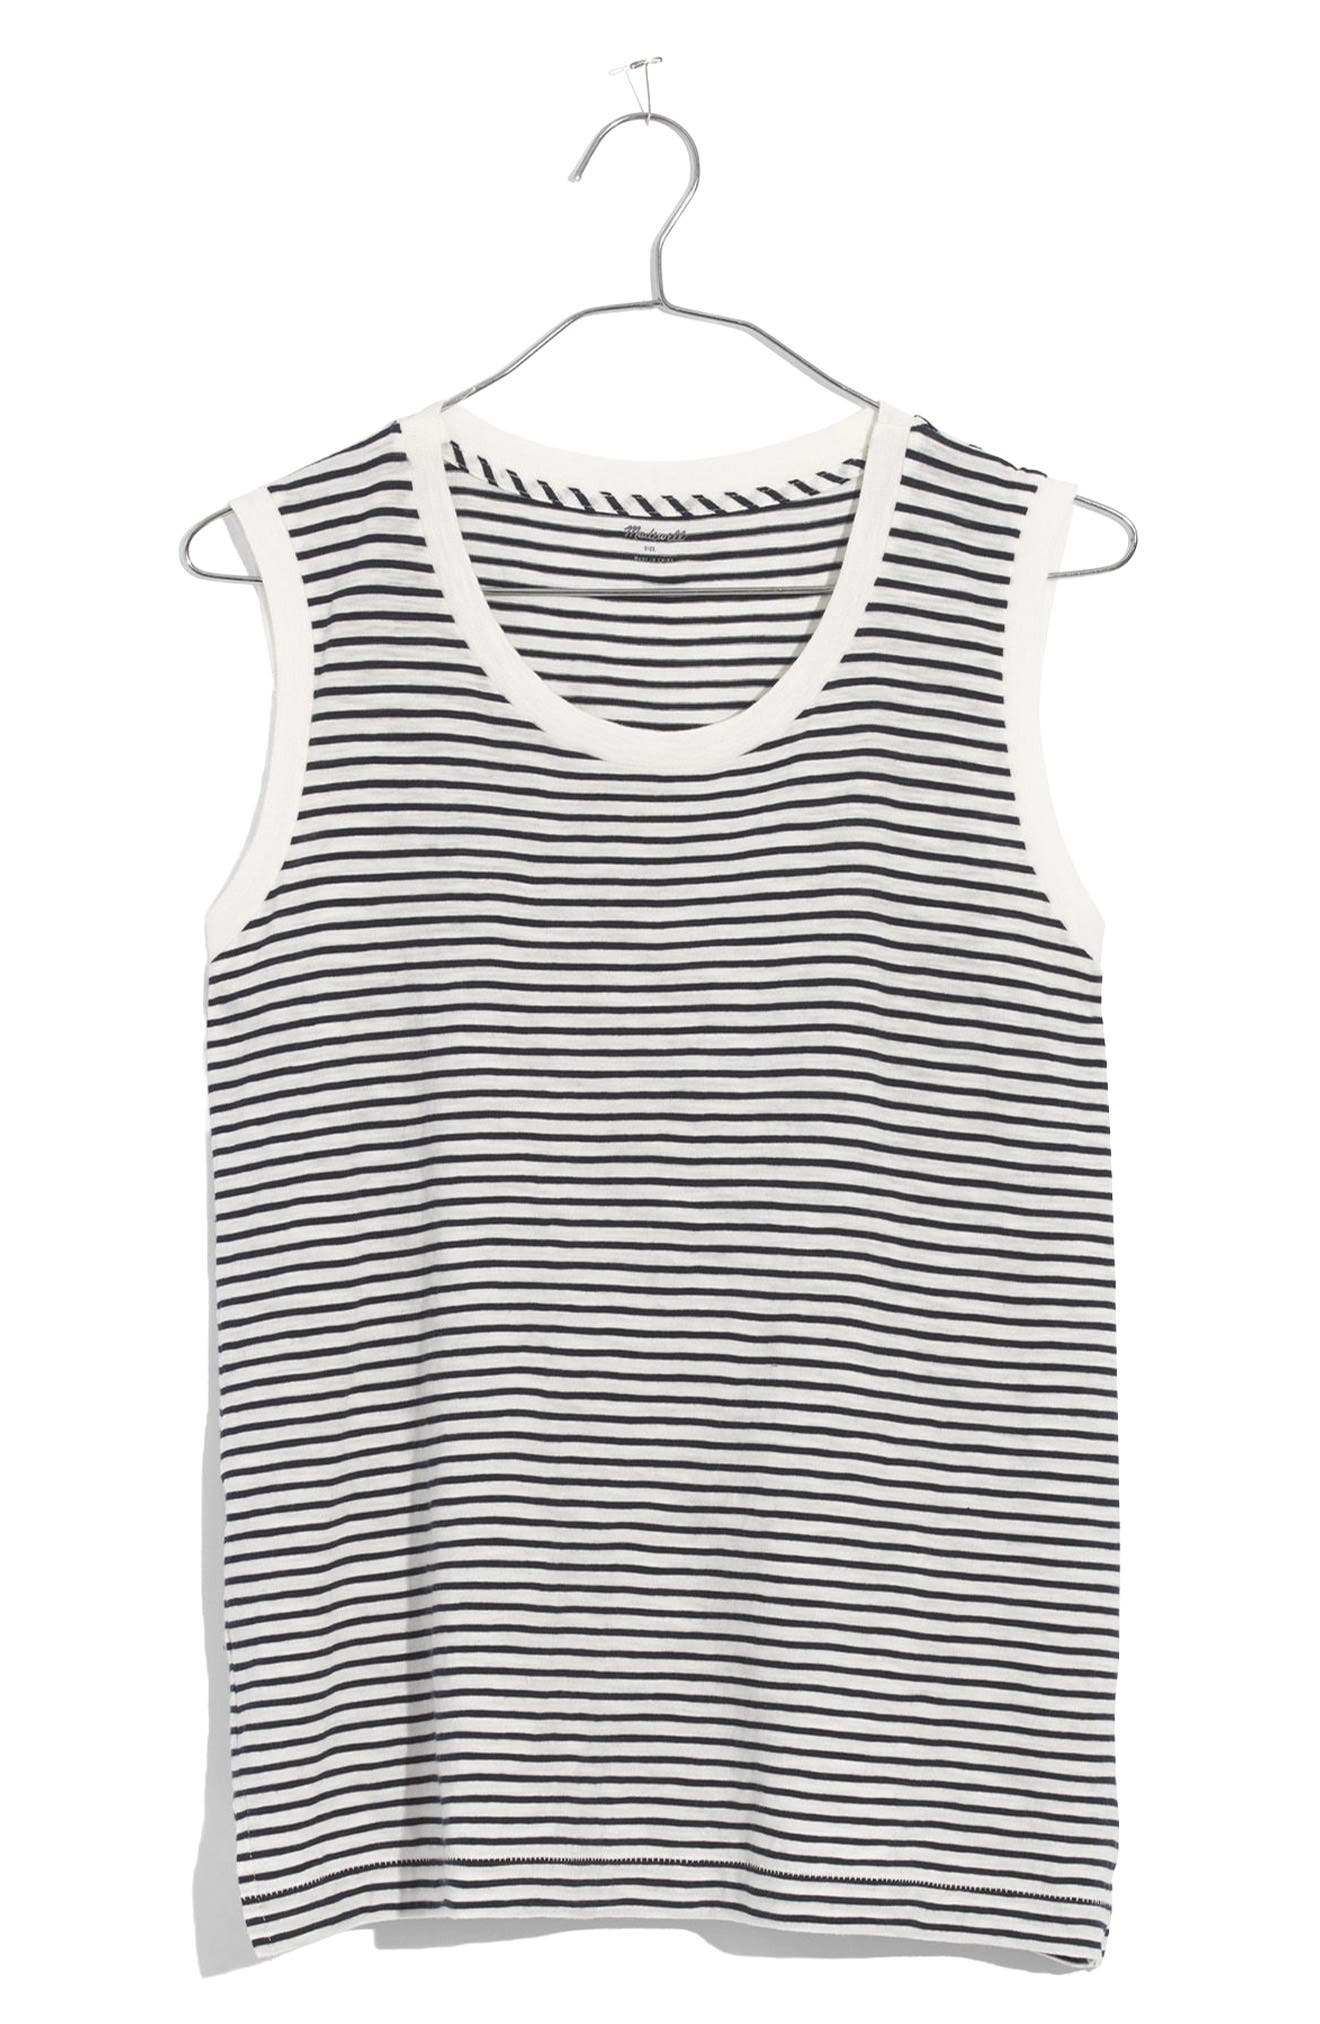 Main Image - Madewell Whisper Cotton Stripe Crewneck Muscle Tank